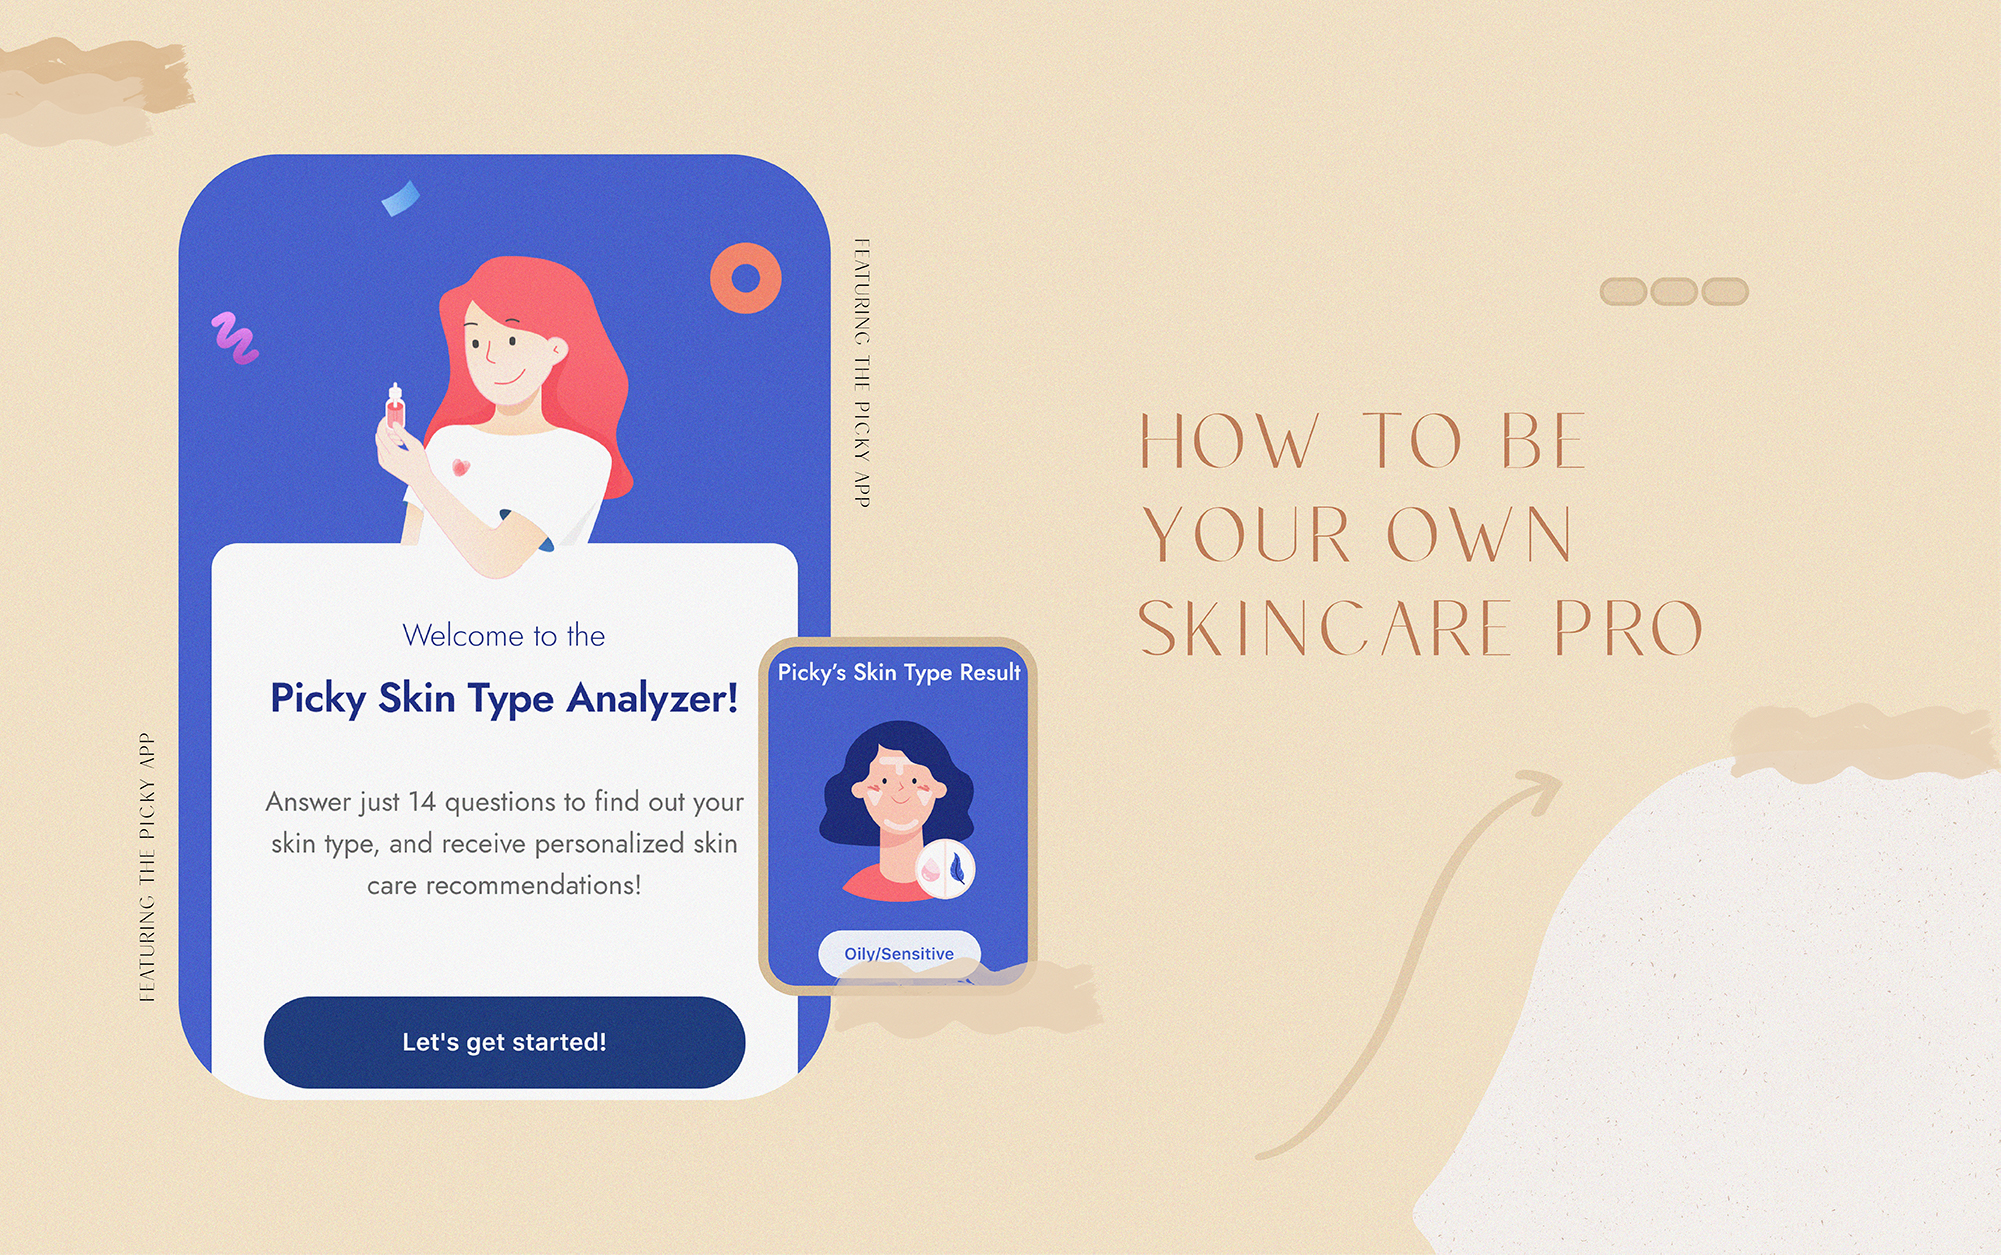 How To Be Your Own Skincare Pro